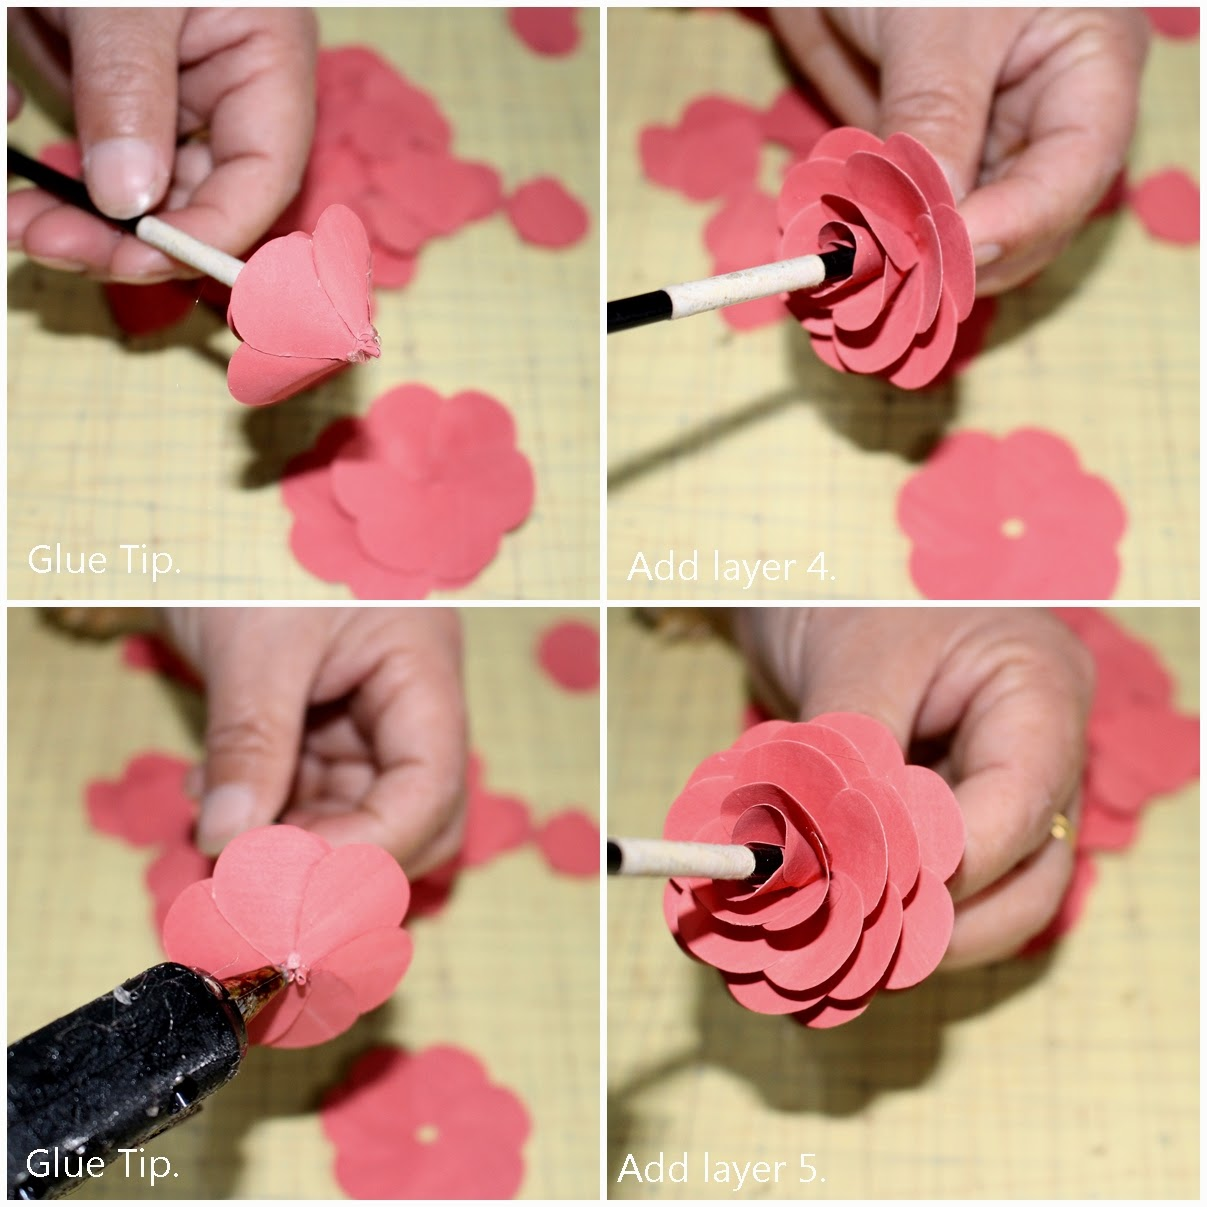 Diy How To Make A Paper Rose Using Latex Painted Paper Reduce